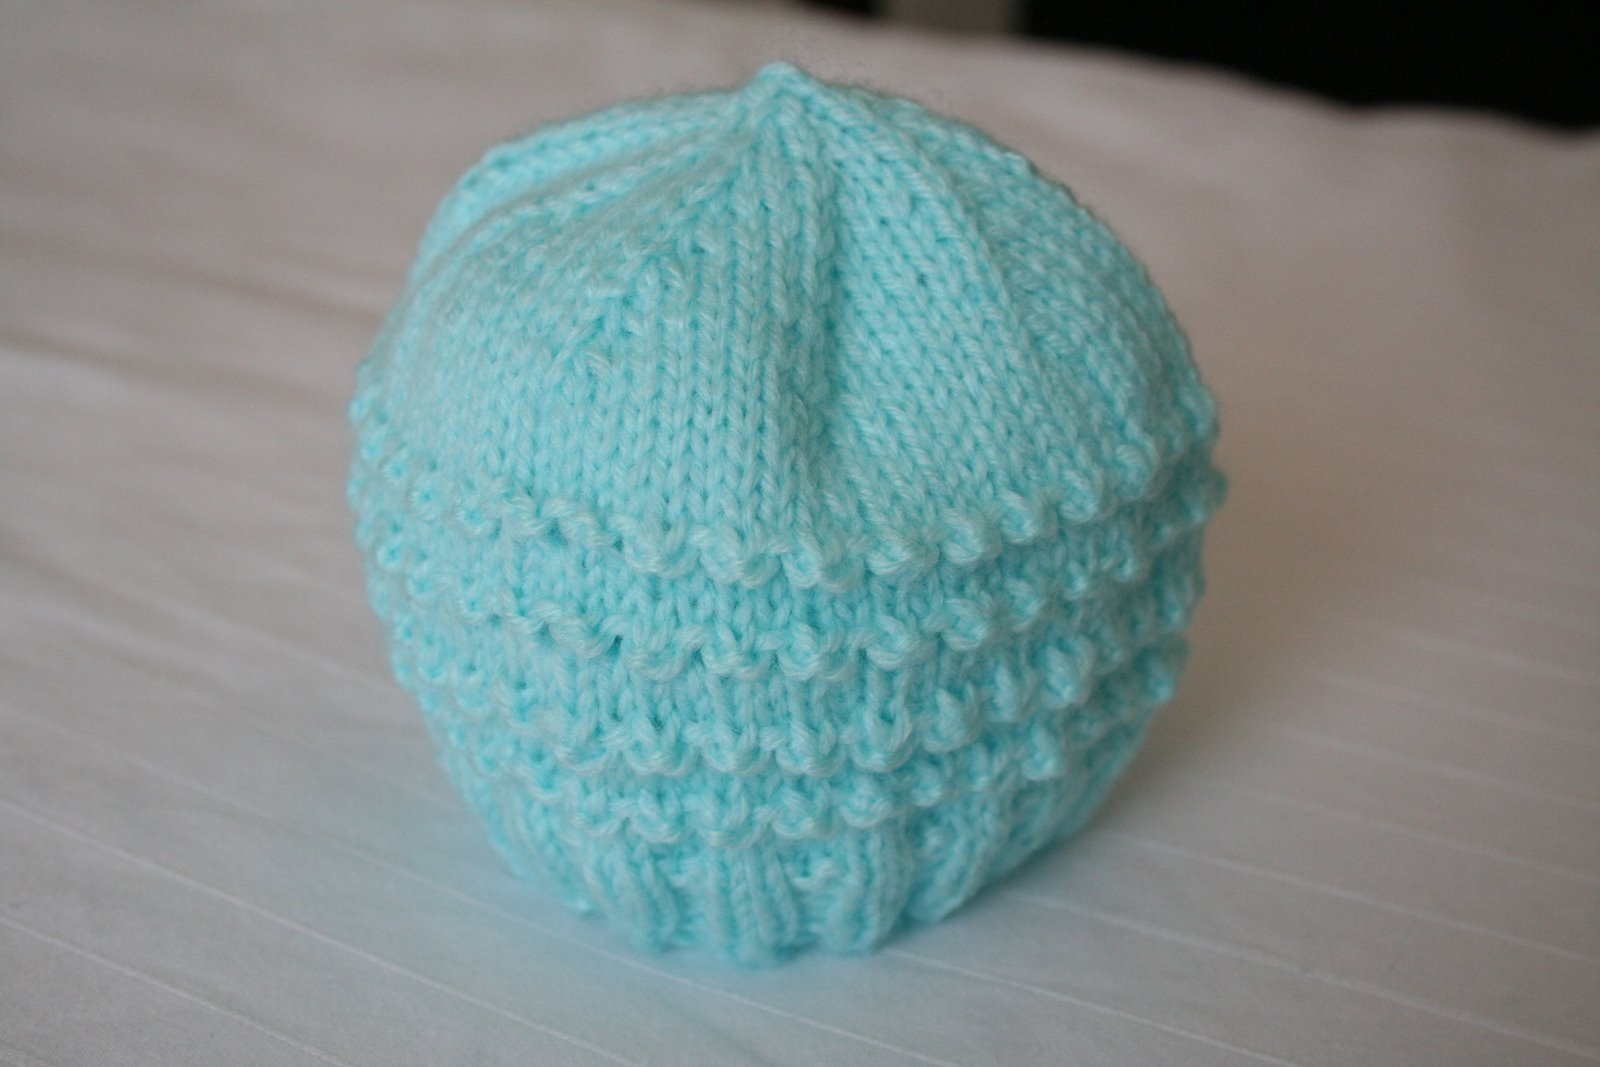 Preemie Knit Hat Pattern A Knitting Blog